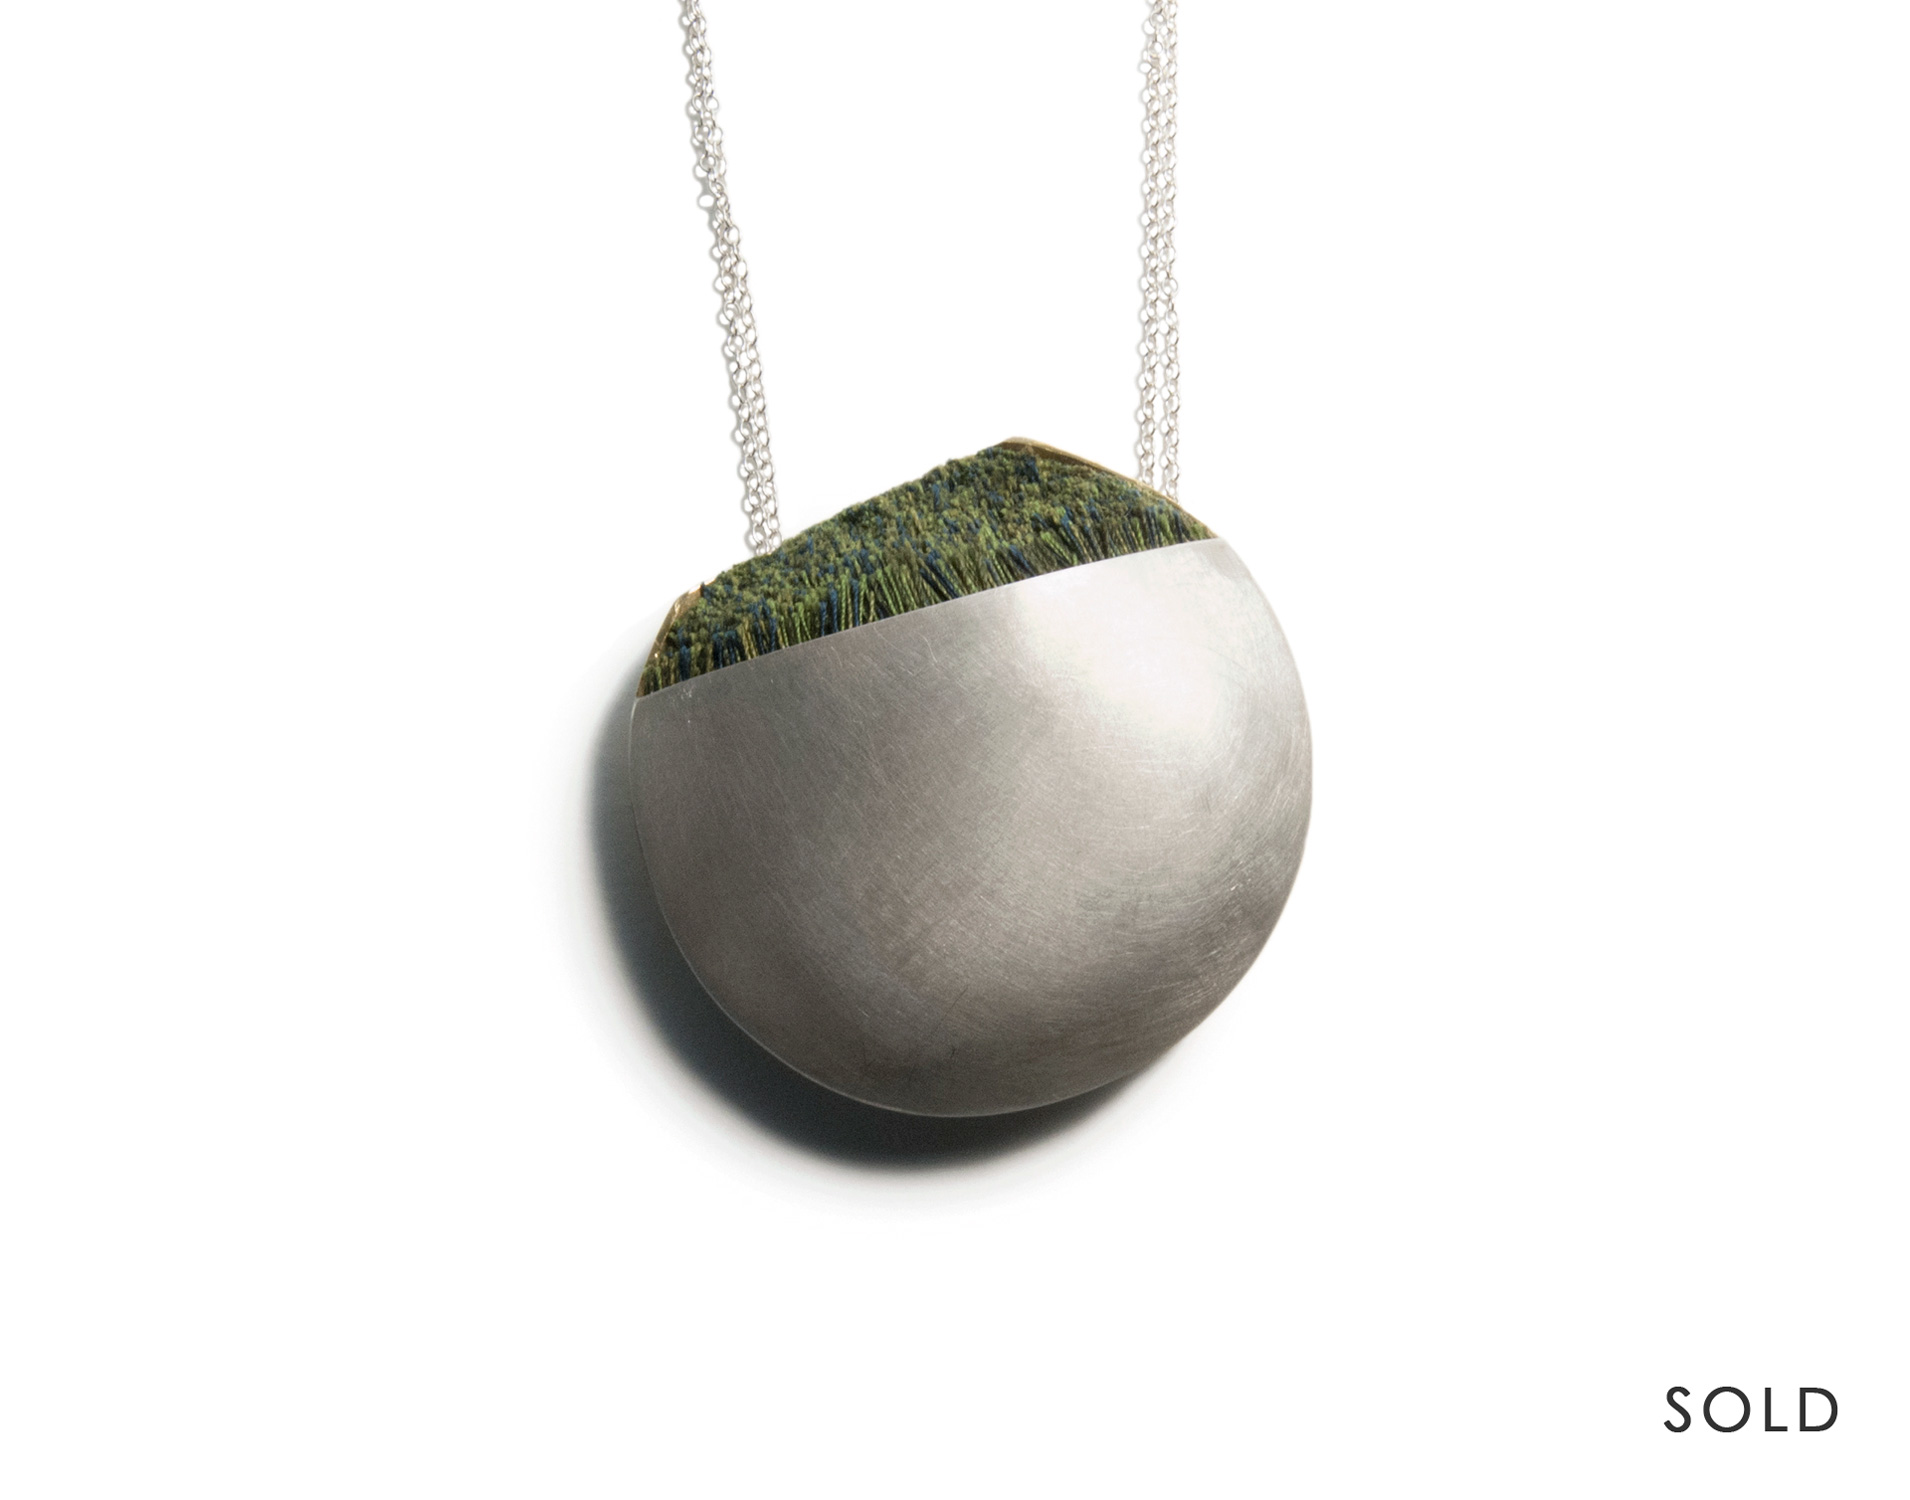 Moss-necklace-SOLD.jpg